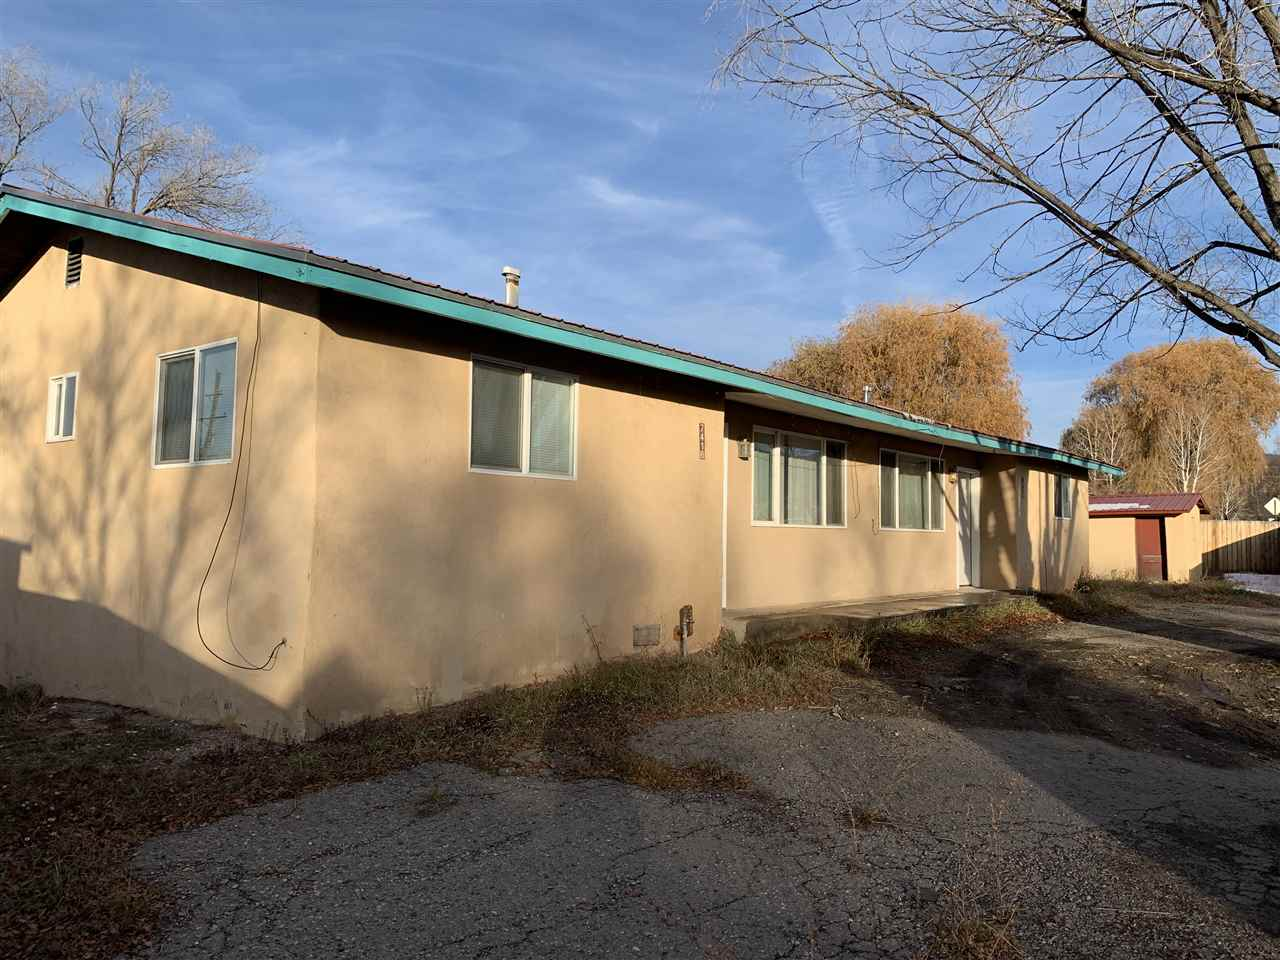 This cute, newly remodeled duplex is located in the Ranchitos area is ready for its new tenants. Since owner remodeled the units, they have not been occupied other than the occasional family visit. Each unit contains 2 bedrooms and 1 bath and are each cozy and inviting. Duplex is located right off State Rd. 240 for easy access and convenience.